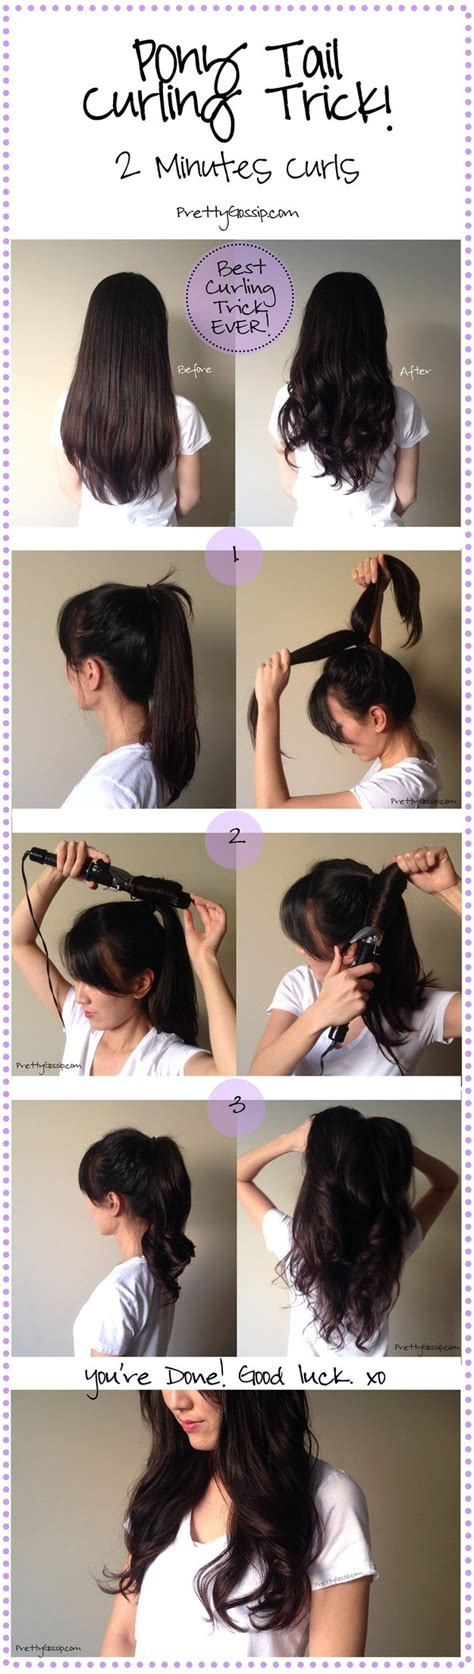 hair hacks 3 ways to take your ponytail to the next level 27 tips and tricks to get the perfect ponytail